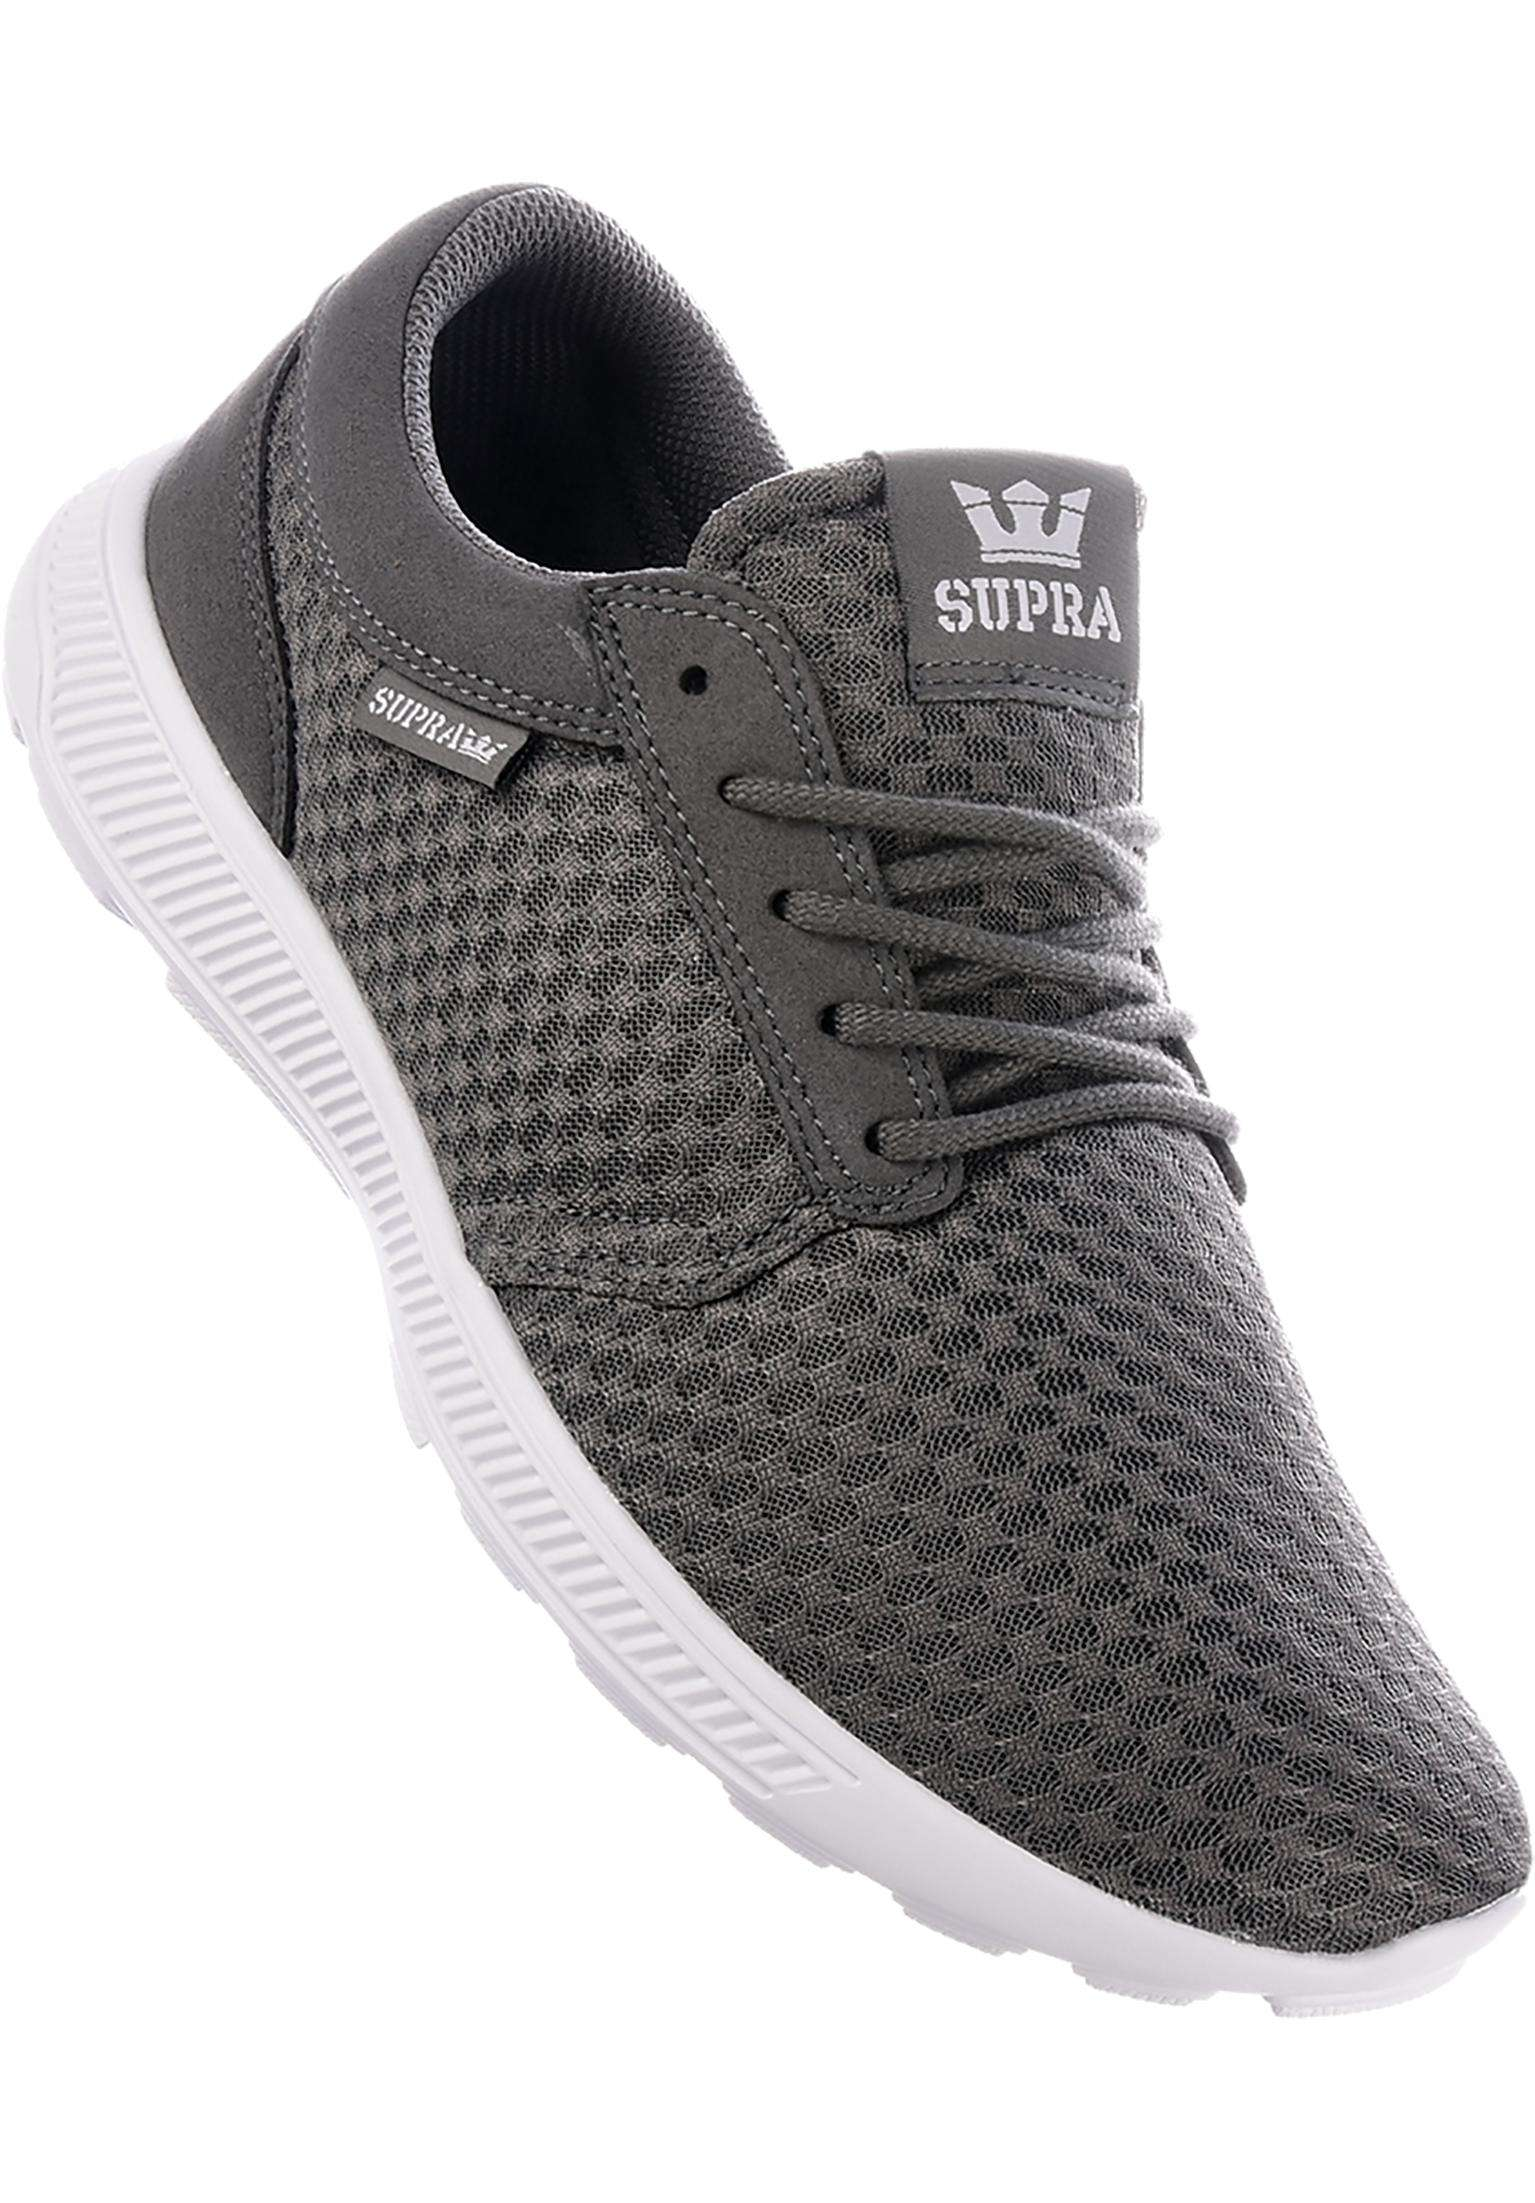 c69b76c0a4cd Hammer Run Supra All Shoes in grey-white for Men